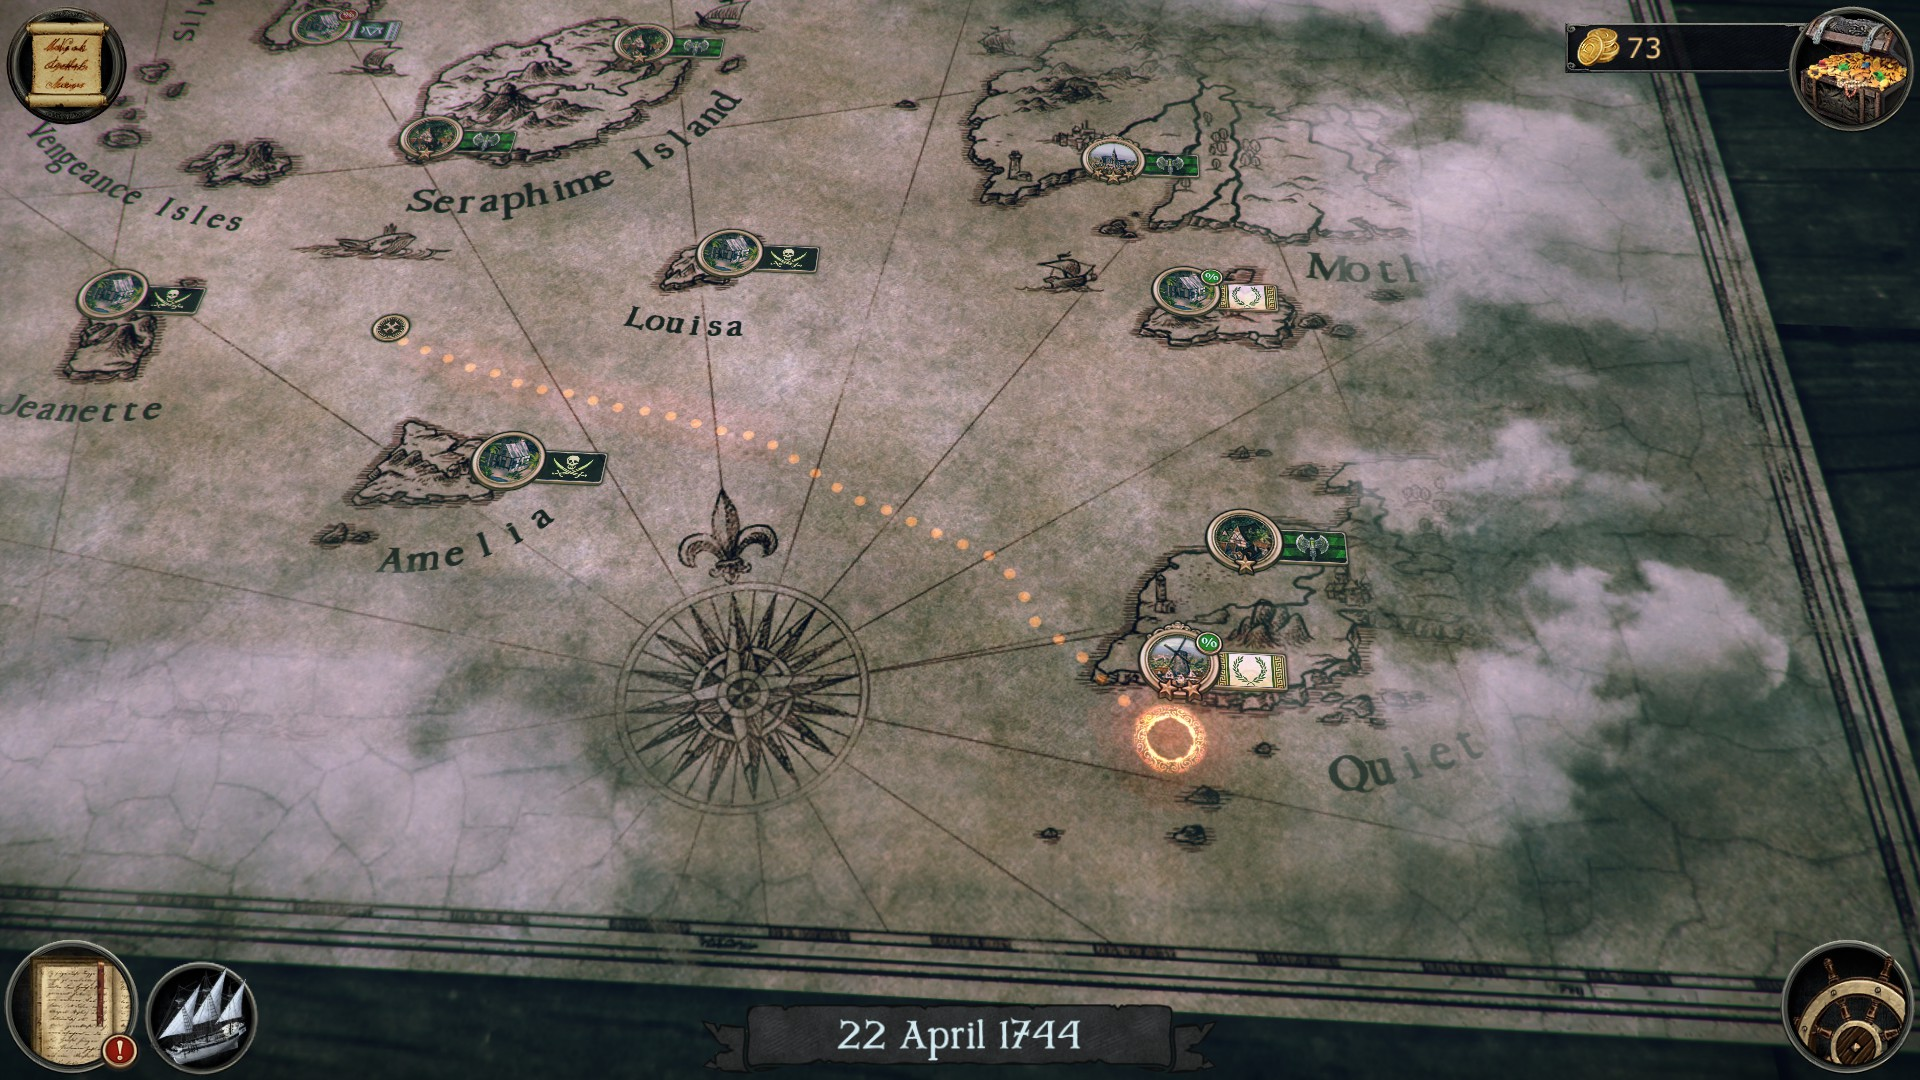 Steam Community :: Guide :: Tempest, The Captain's Manual v0 861